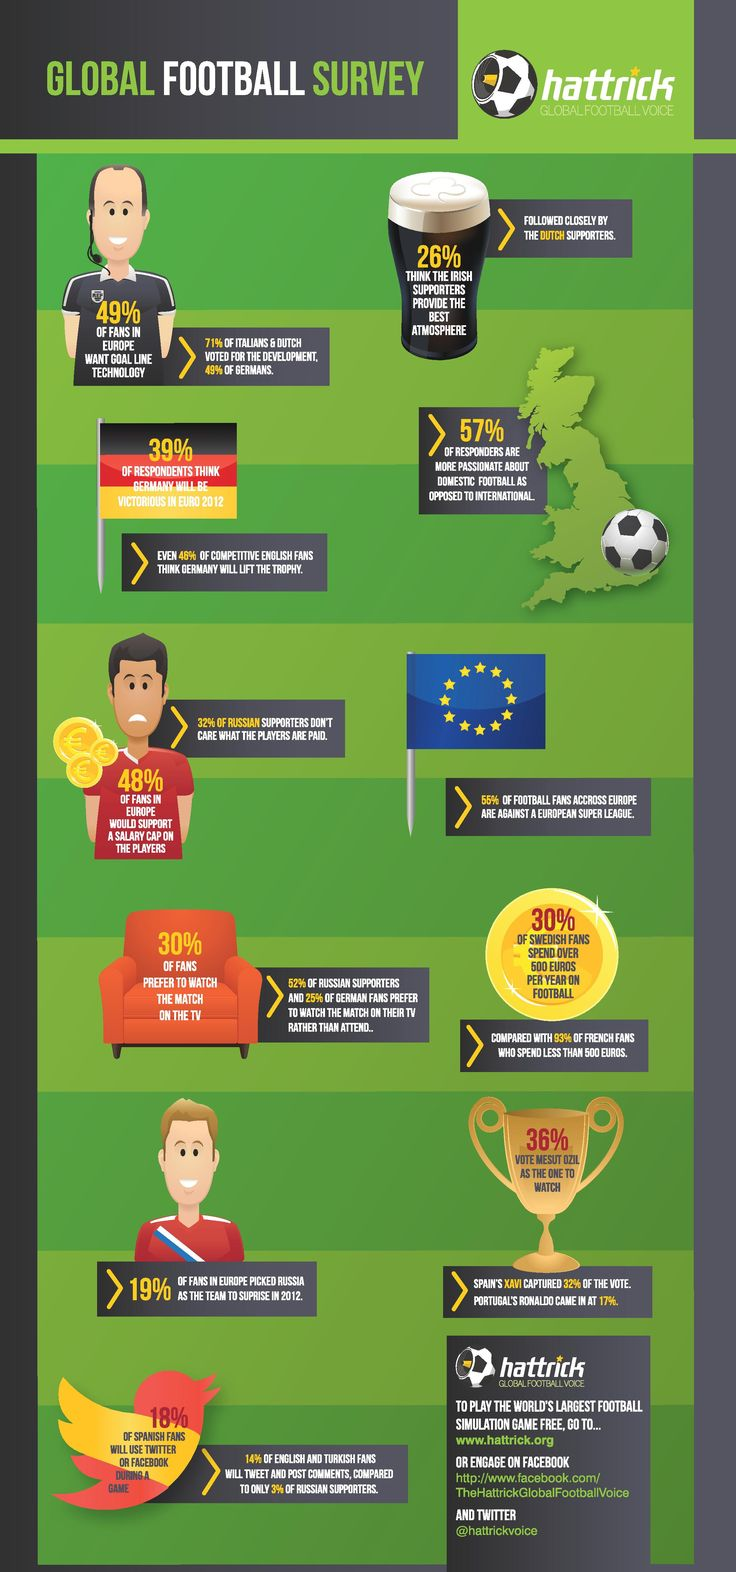 Over 30,000 fans from over 25 countries took part in the annual Hattrick Global Football Voice poll during UEFA Euro2012